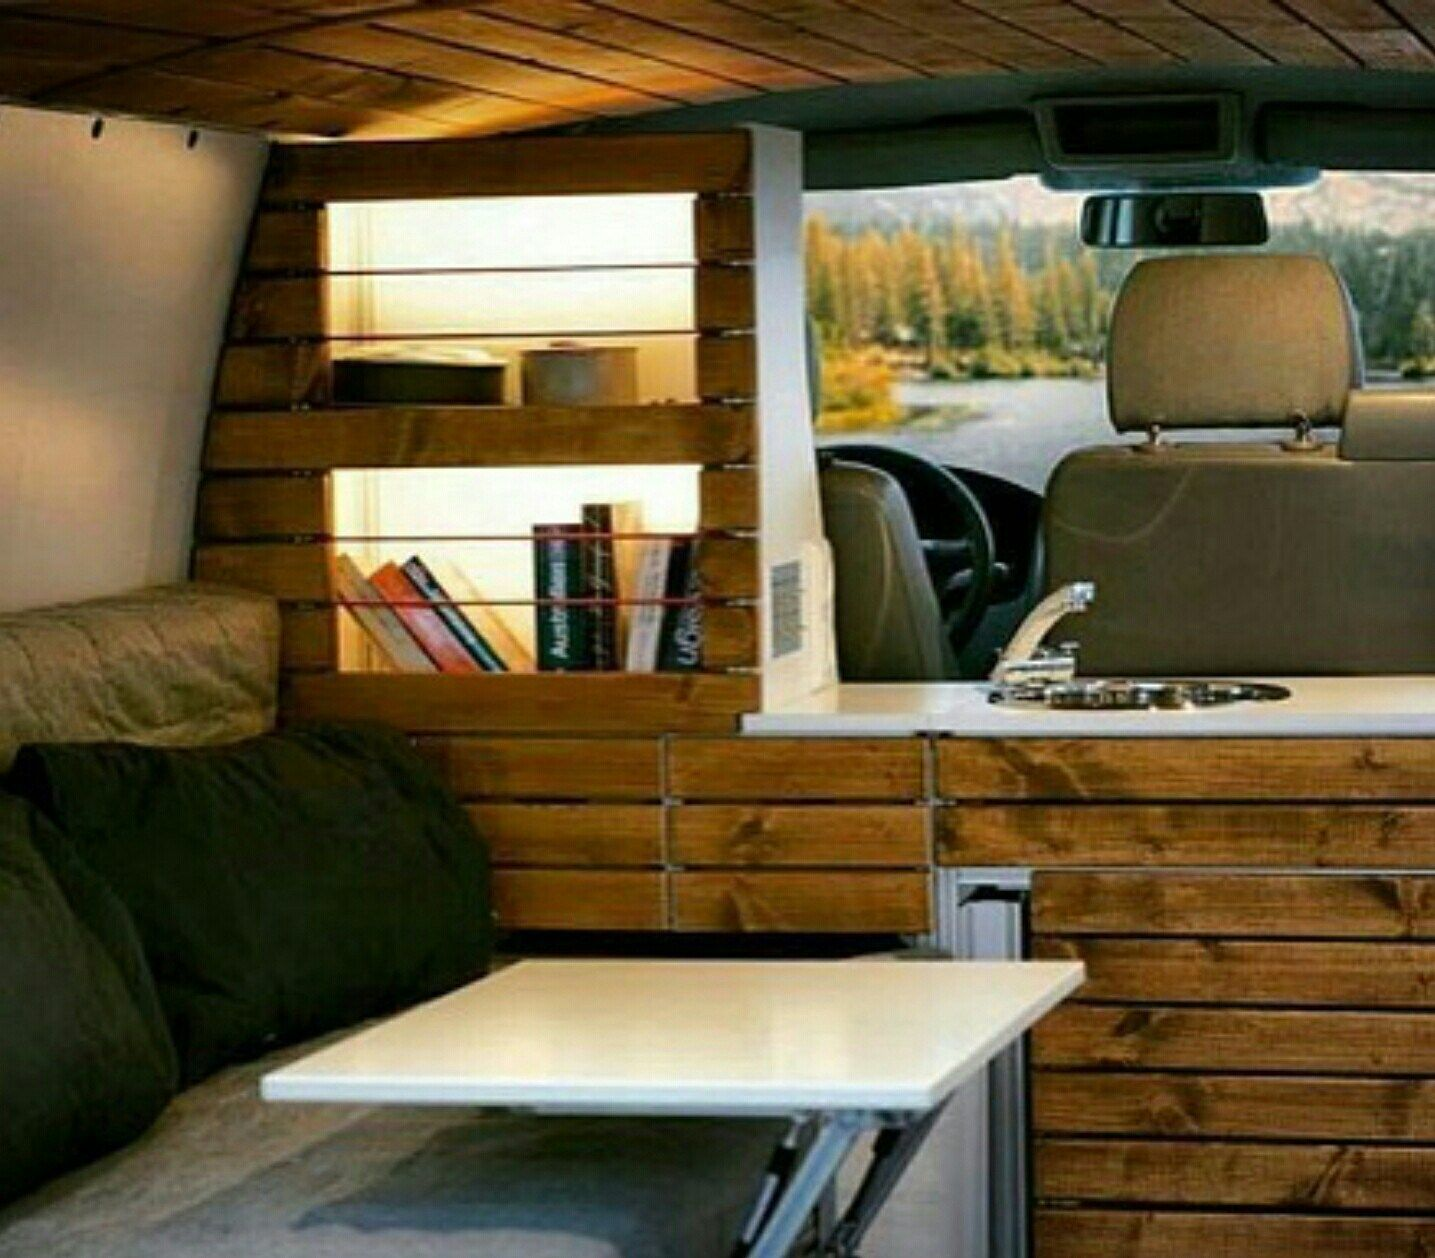 Vw Camper Ideas Campervan Interior 24 Utilitaire Amenage